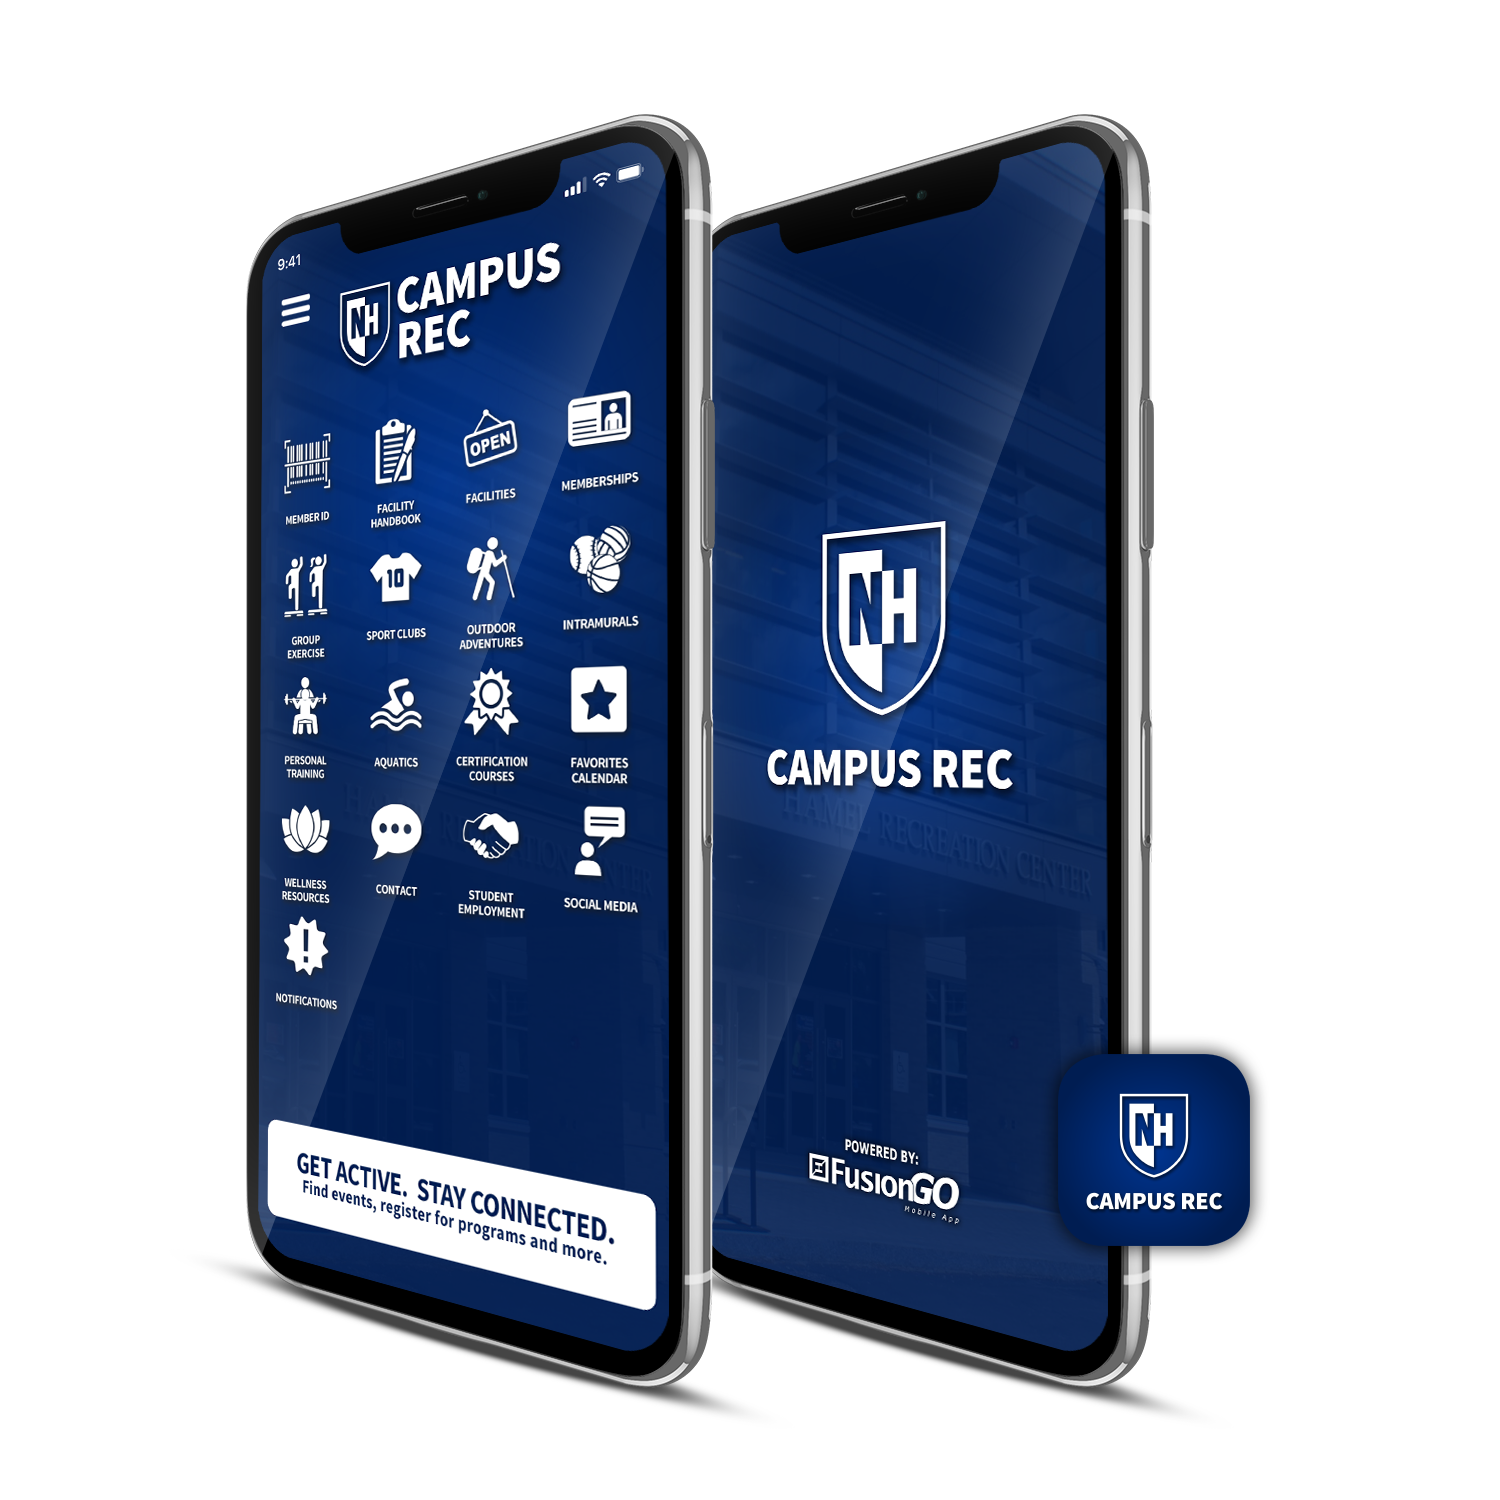 rendering of campus rec app on a smart phone